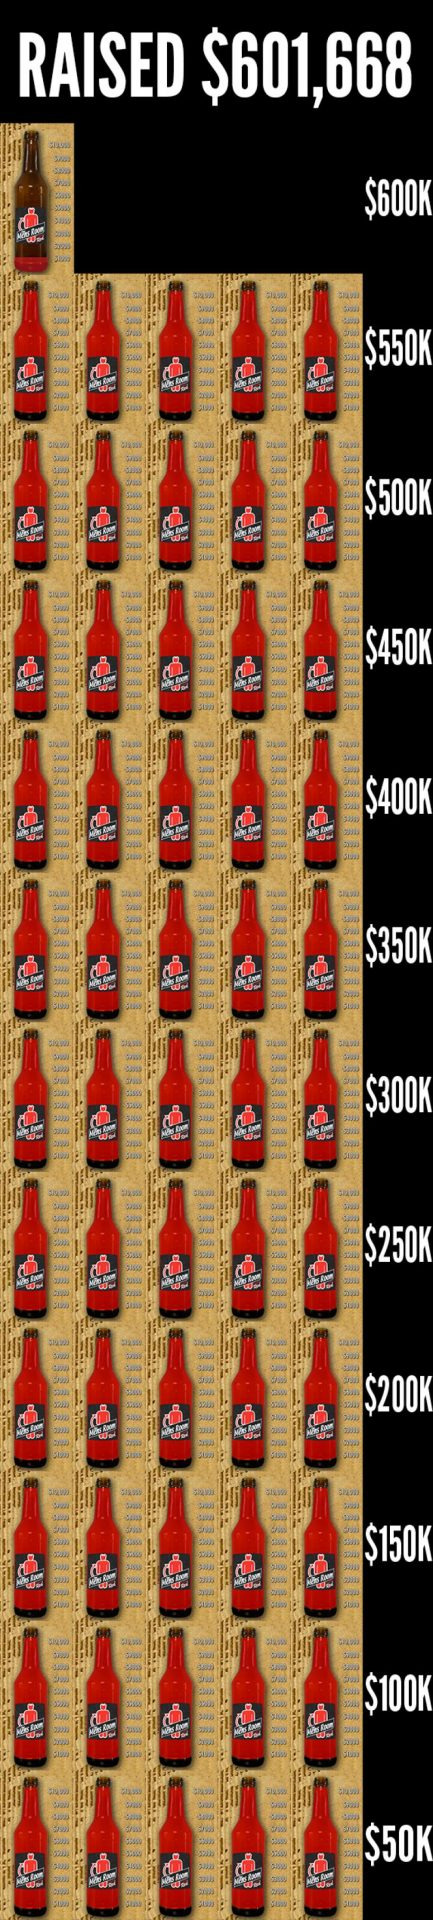 Mens Room fundraising with beer. See how it stacks up.